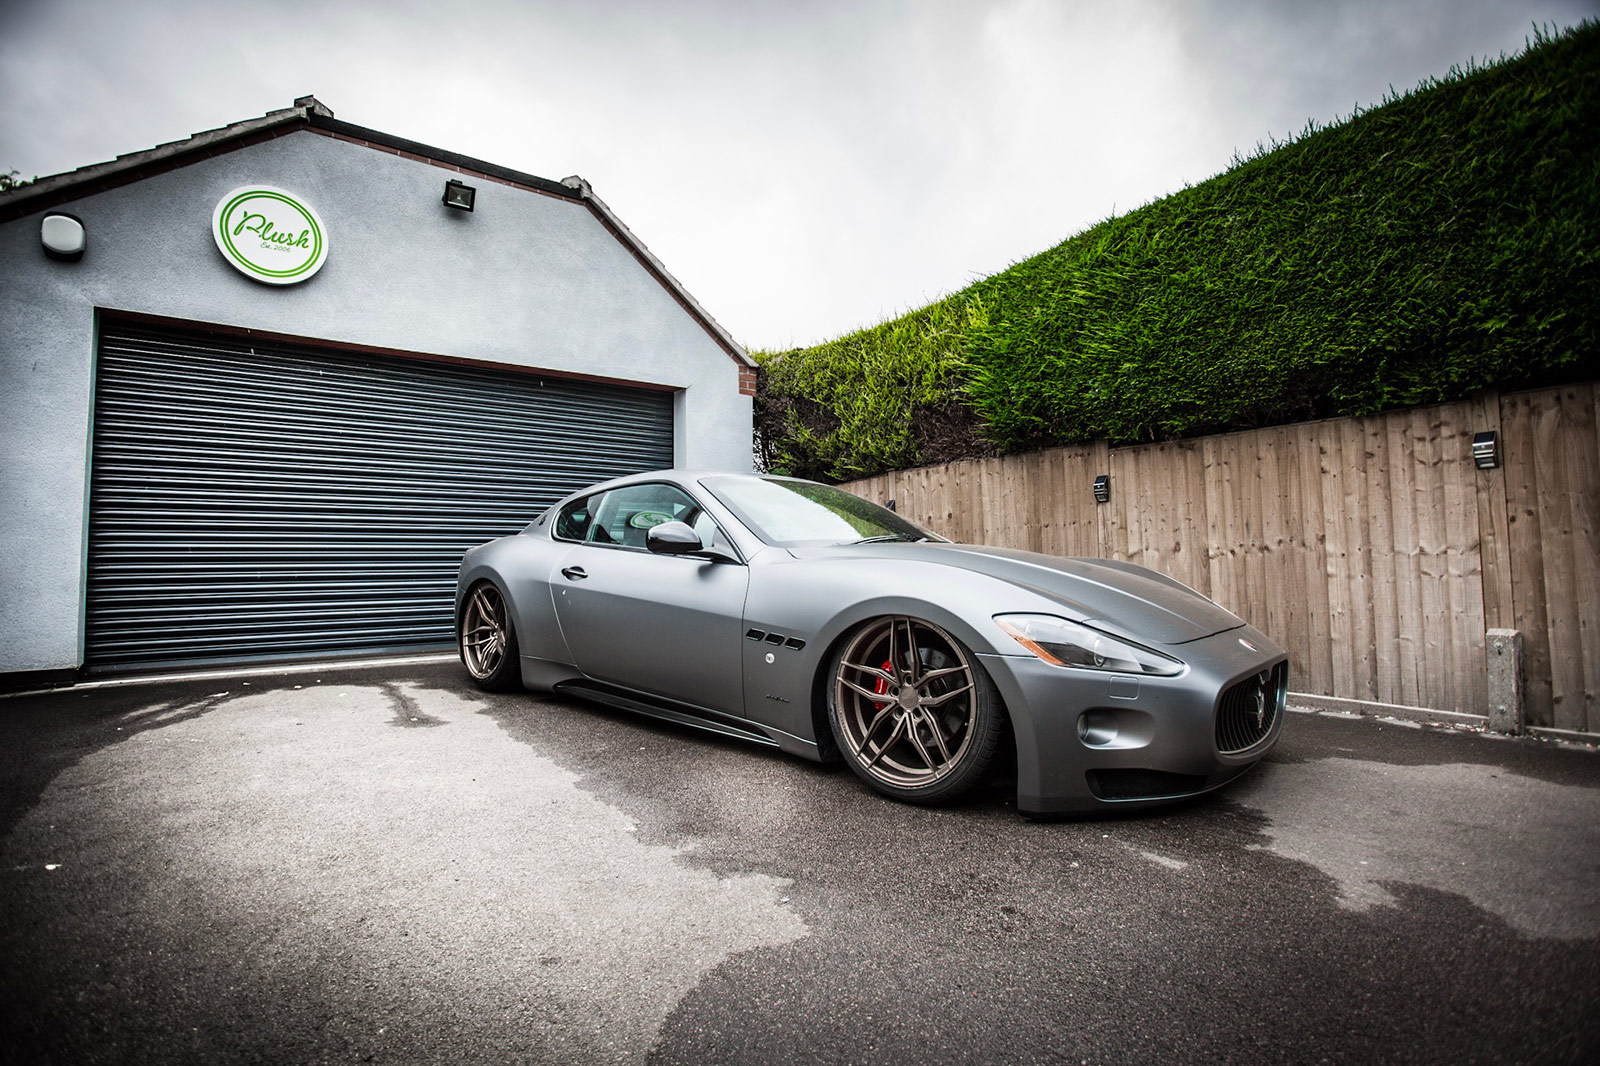 Maserati Granturismo on Air Ride suspension